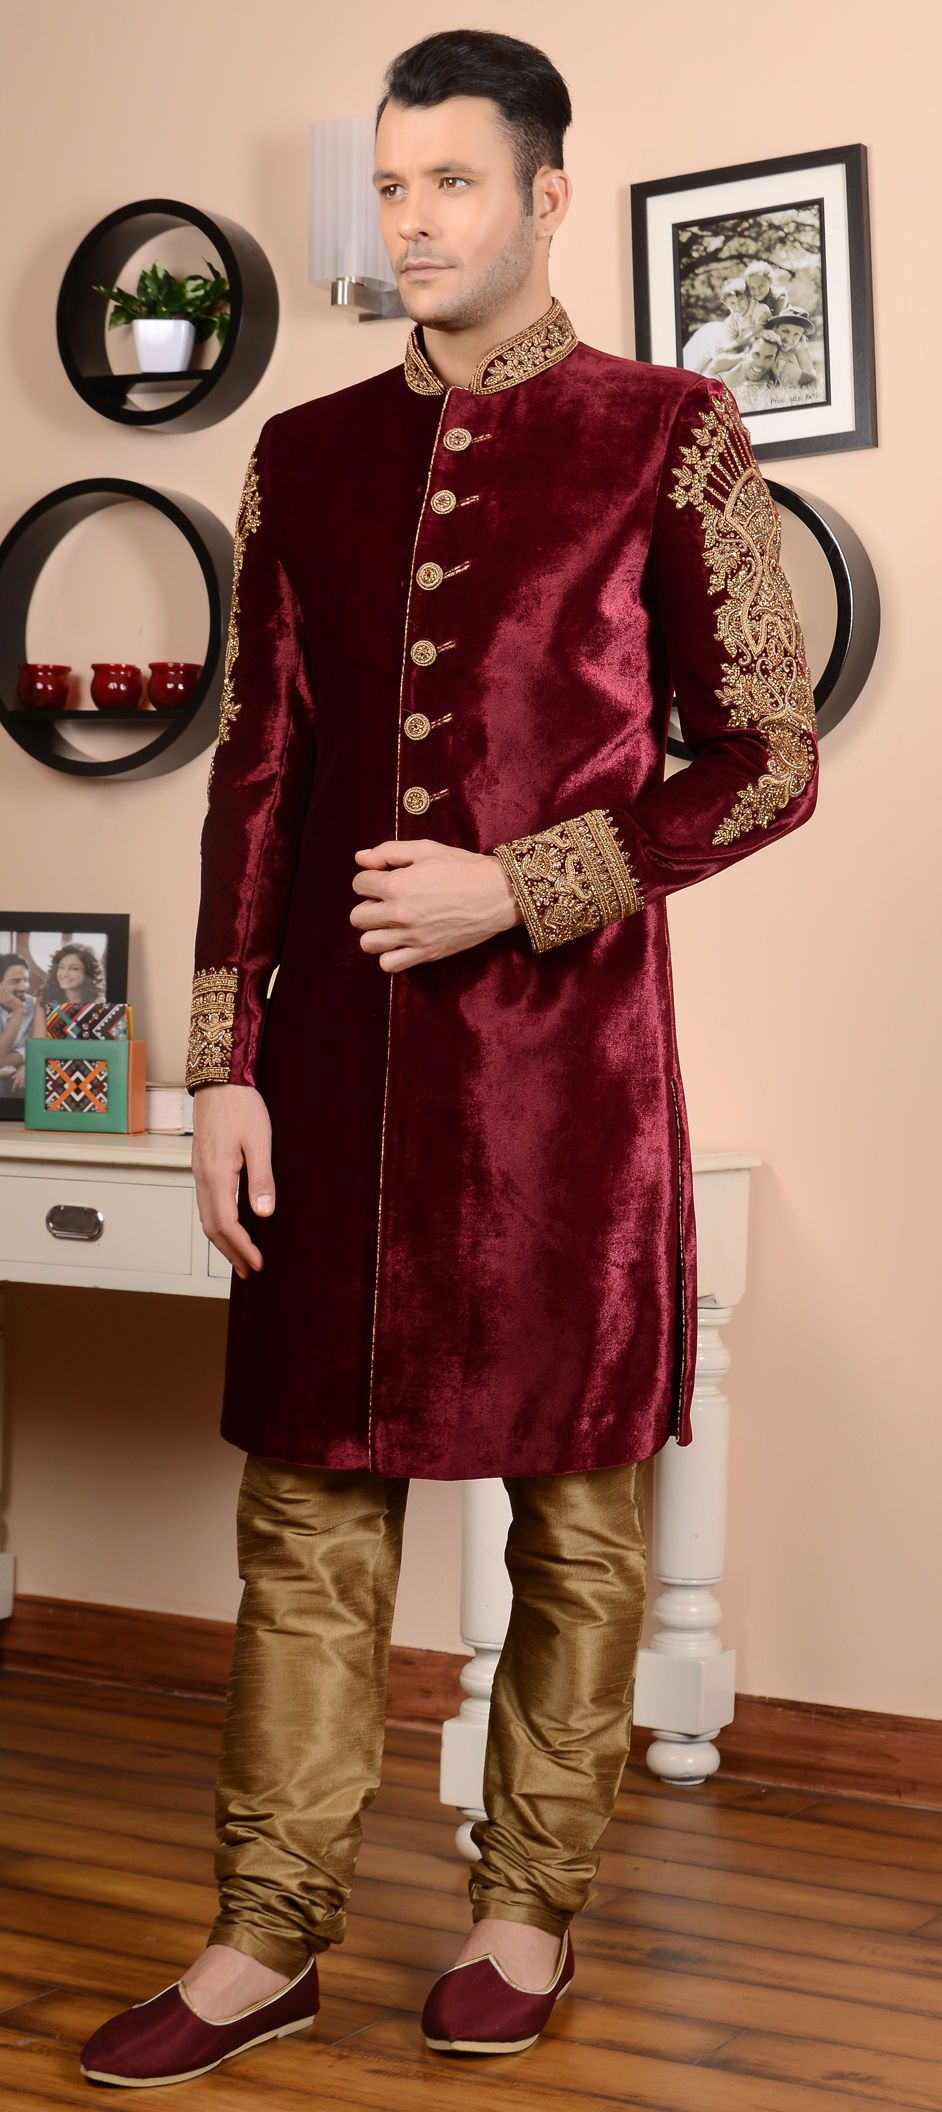 508243 red and maroon color velvet fabric sherwani